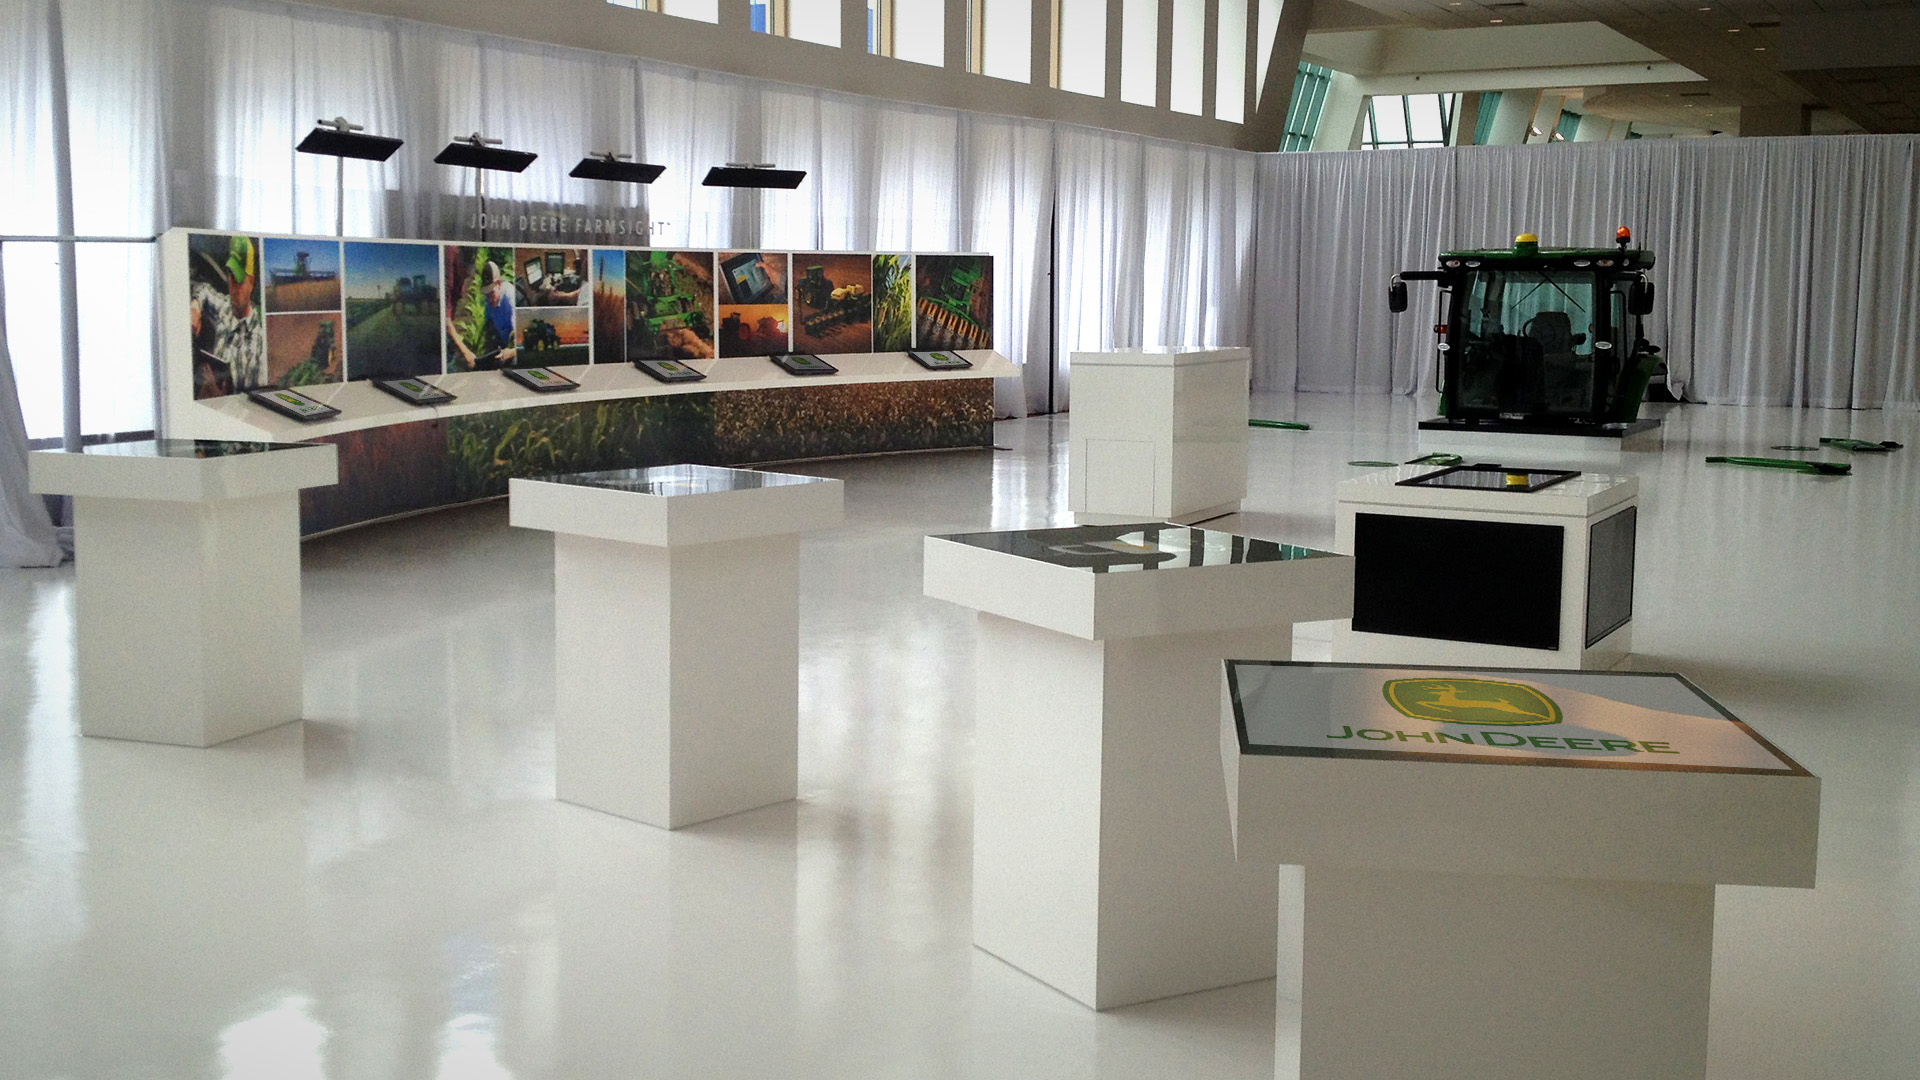 John Deere ISG Tradeshow Display with internally lit tabletops and individual touchscreen monitors